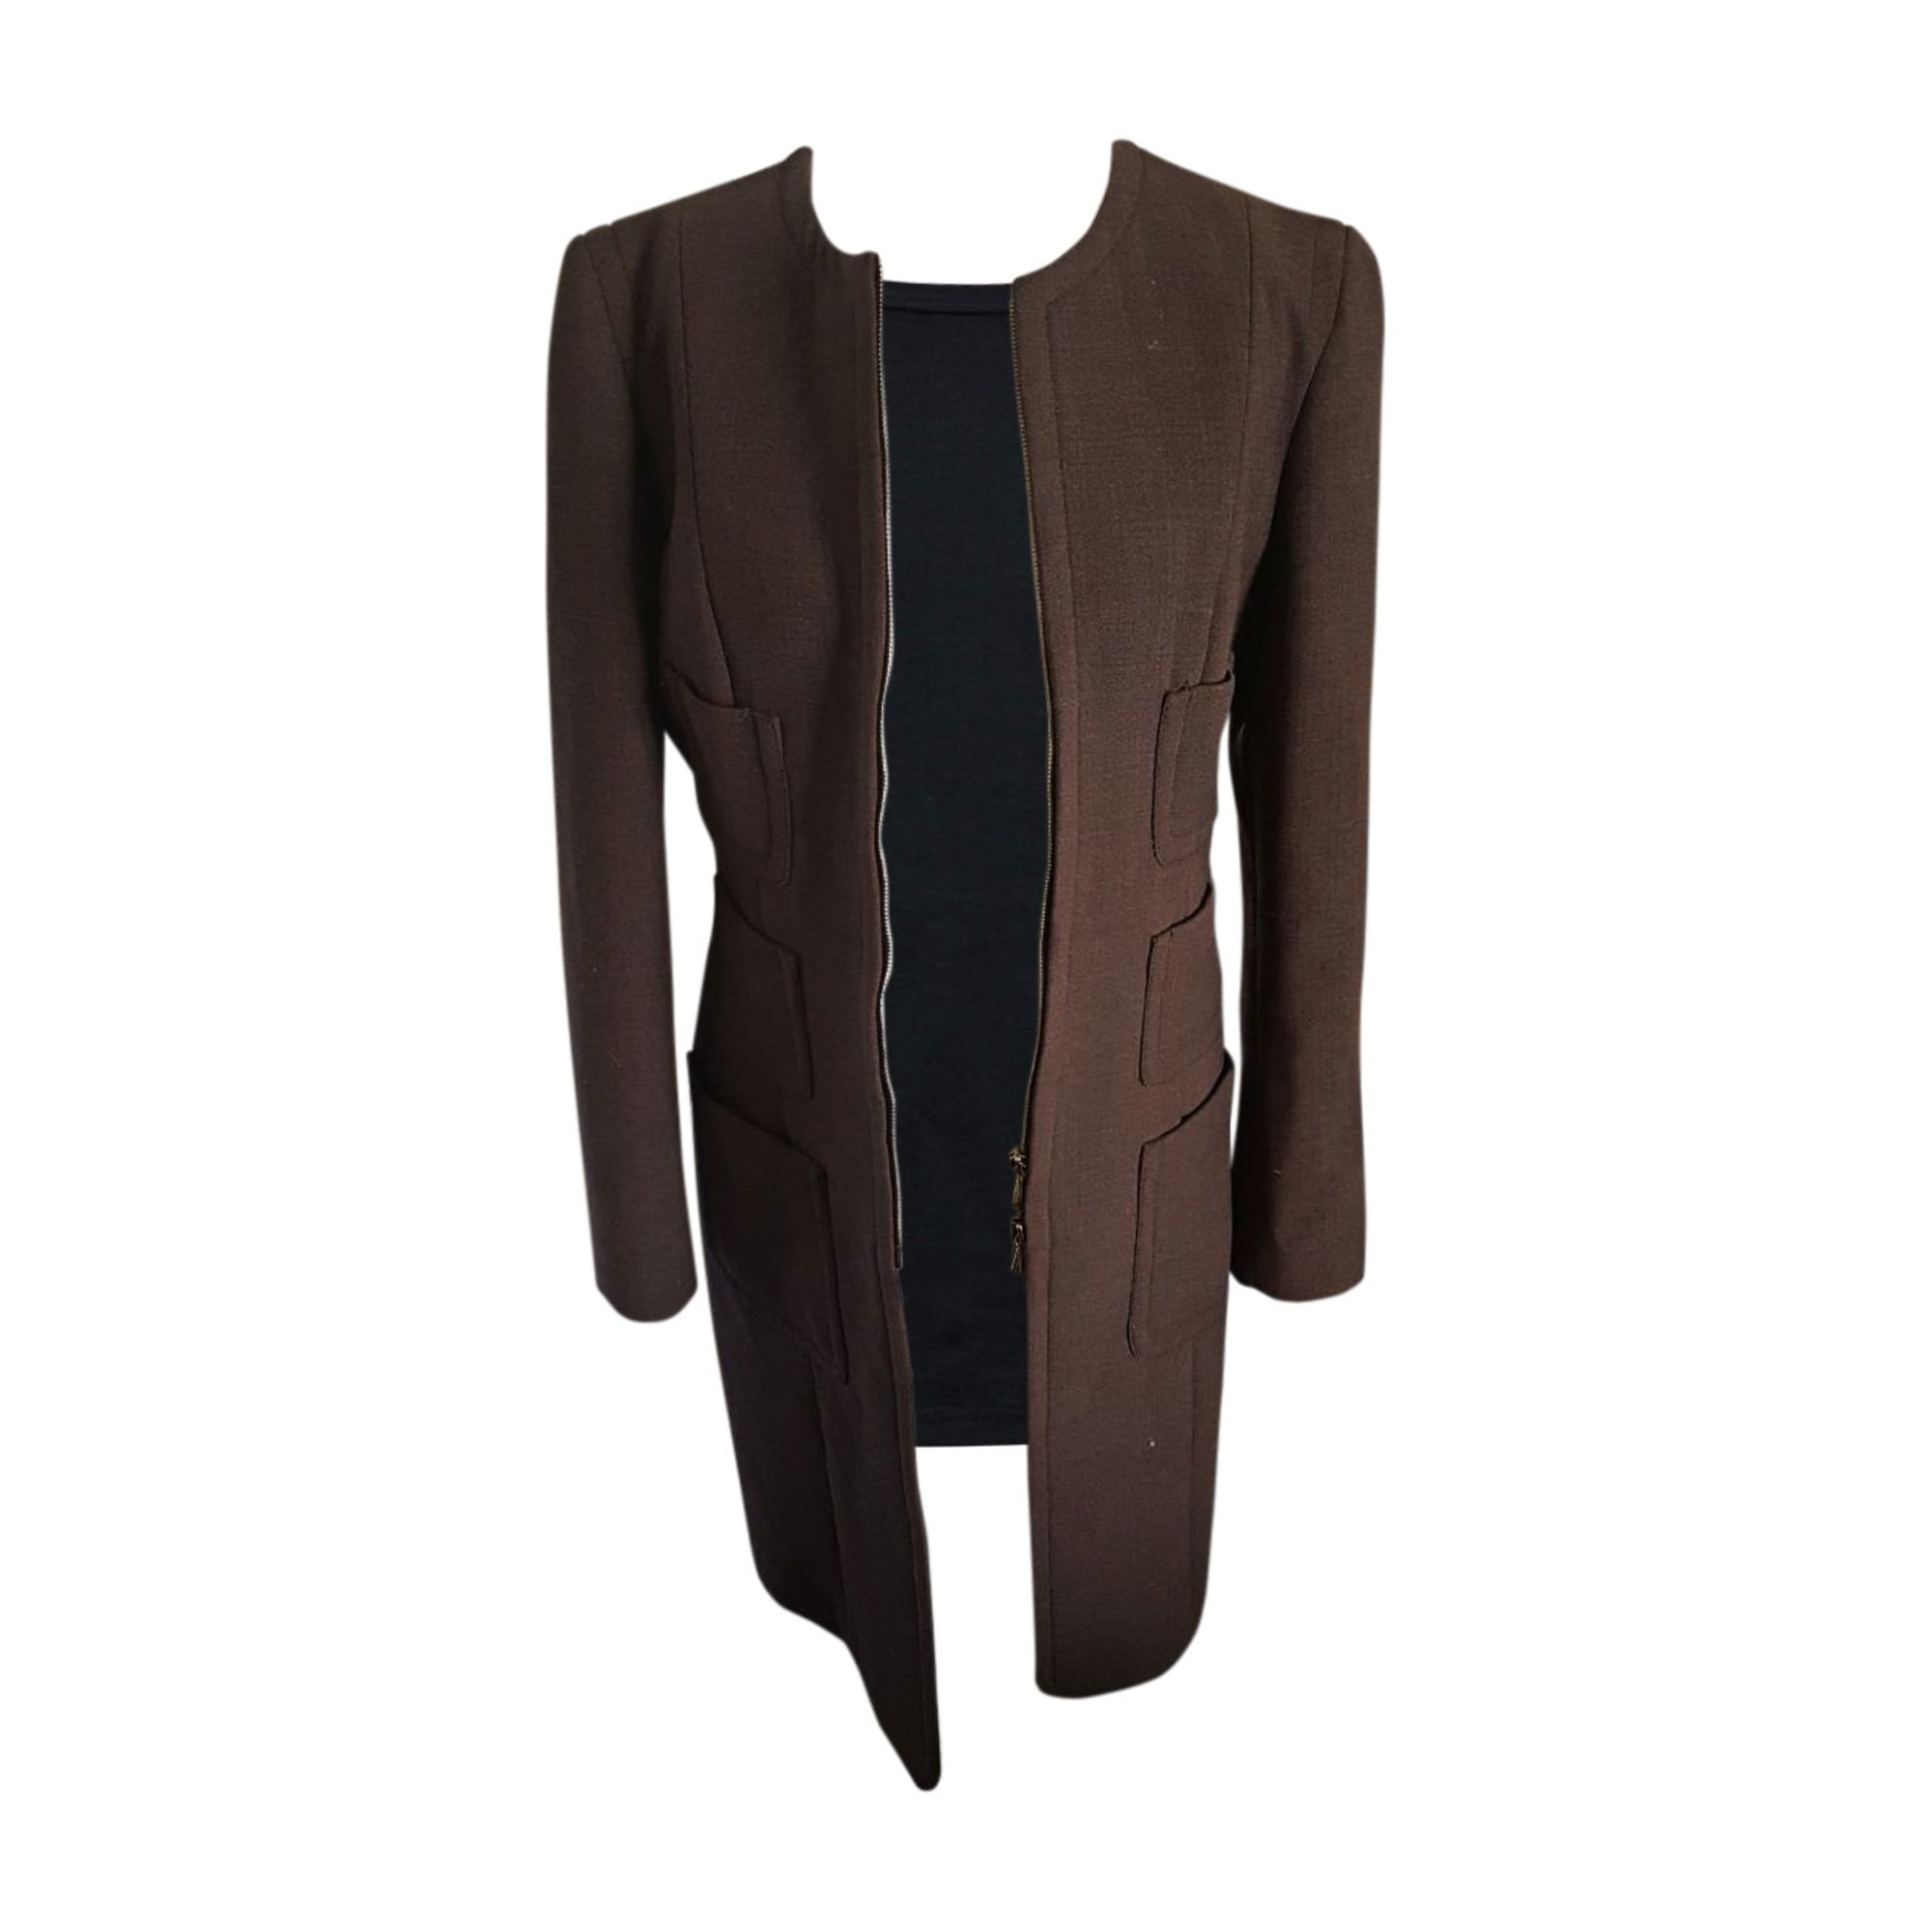 Manteau PAUL SMITH Marron